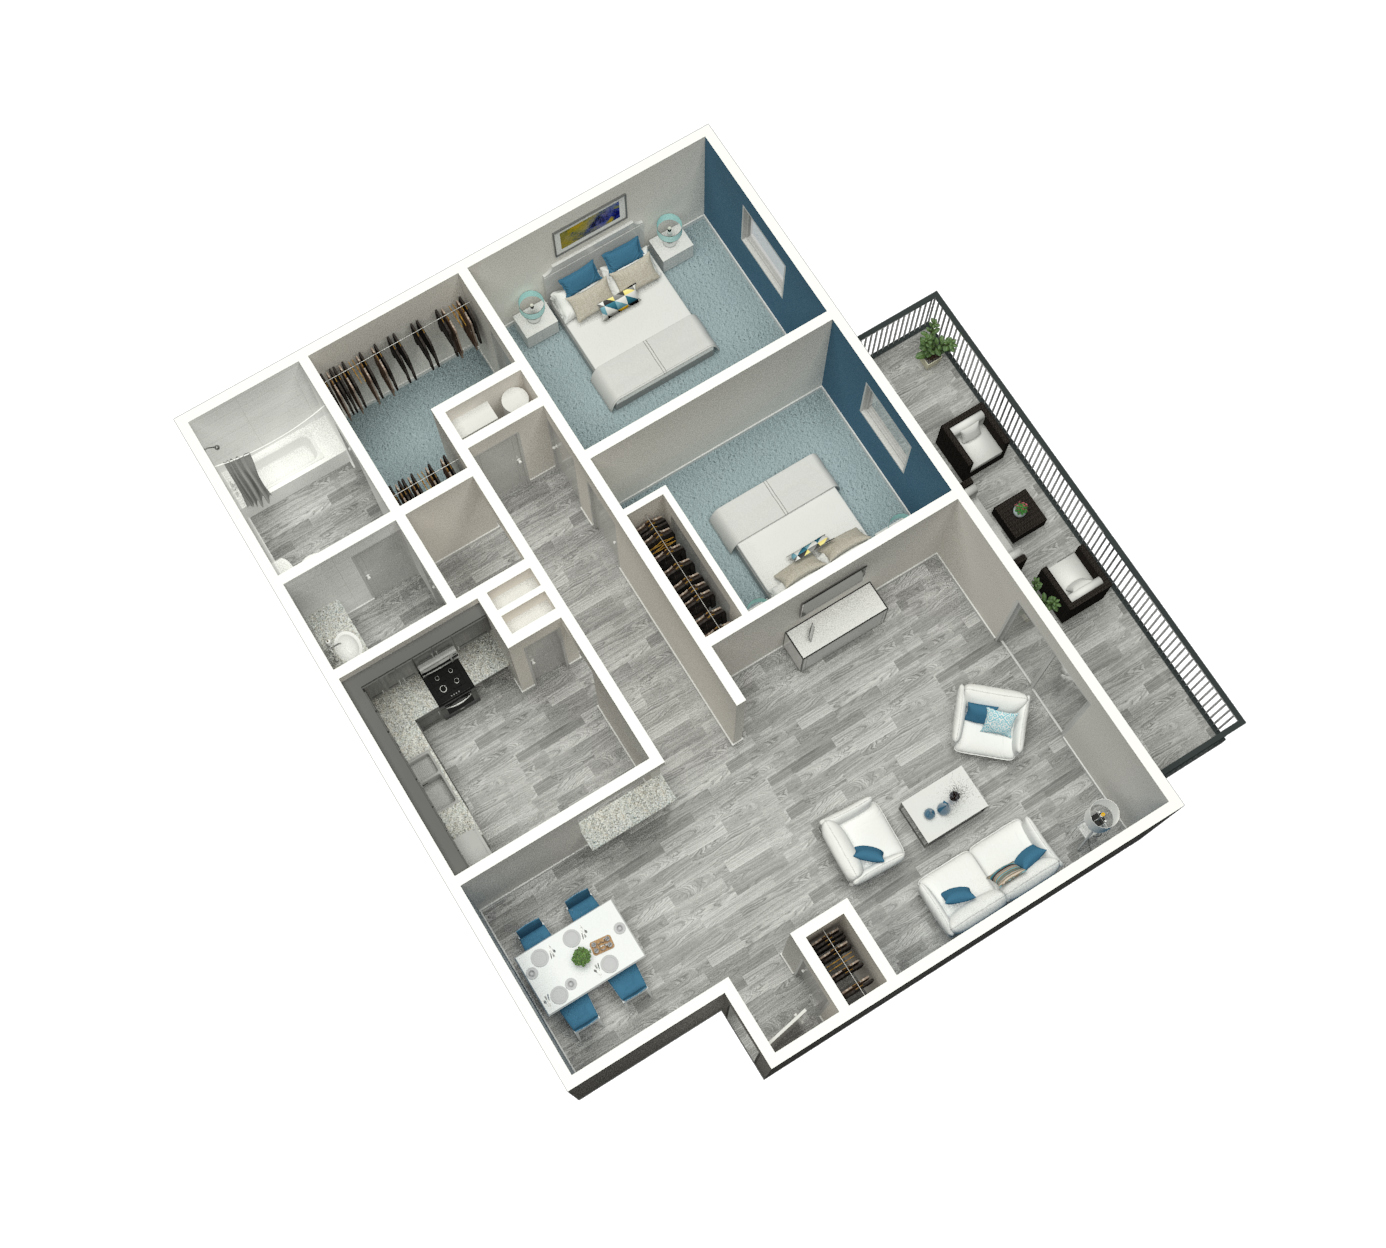 2 Bed | 1 Bed | 1095 SF